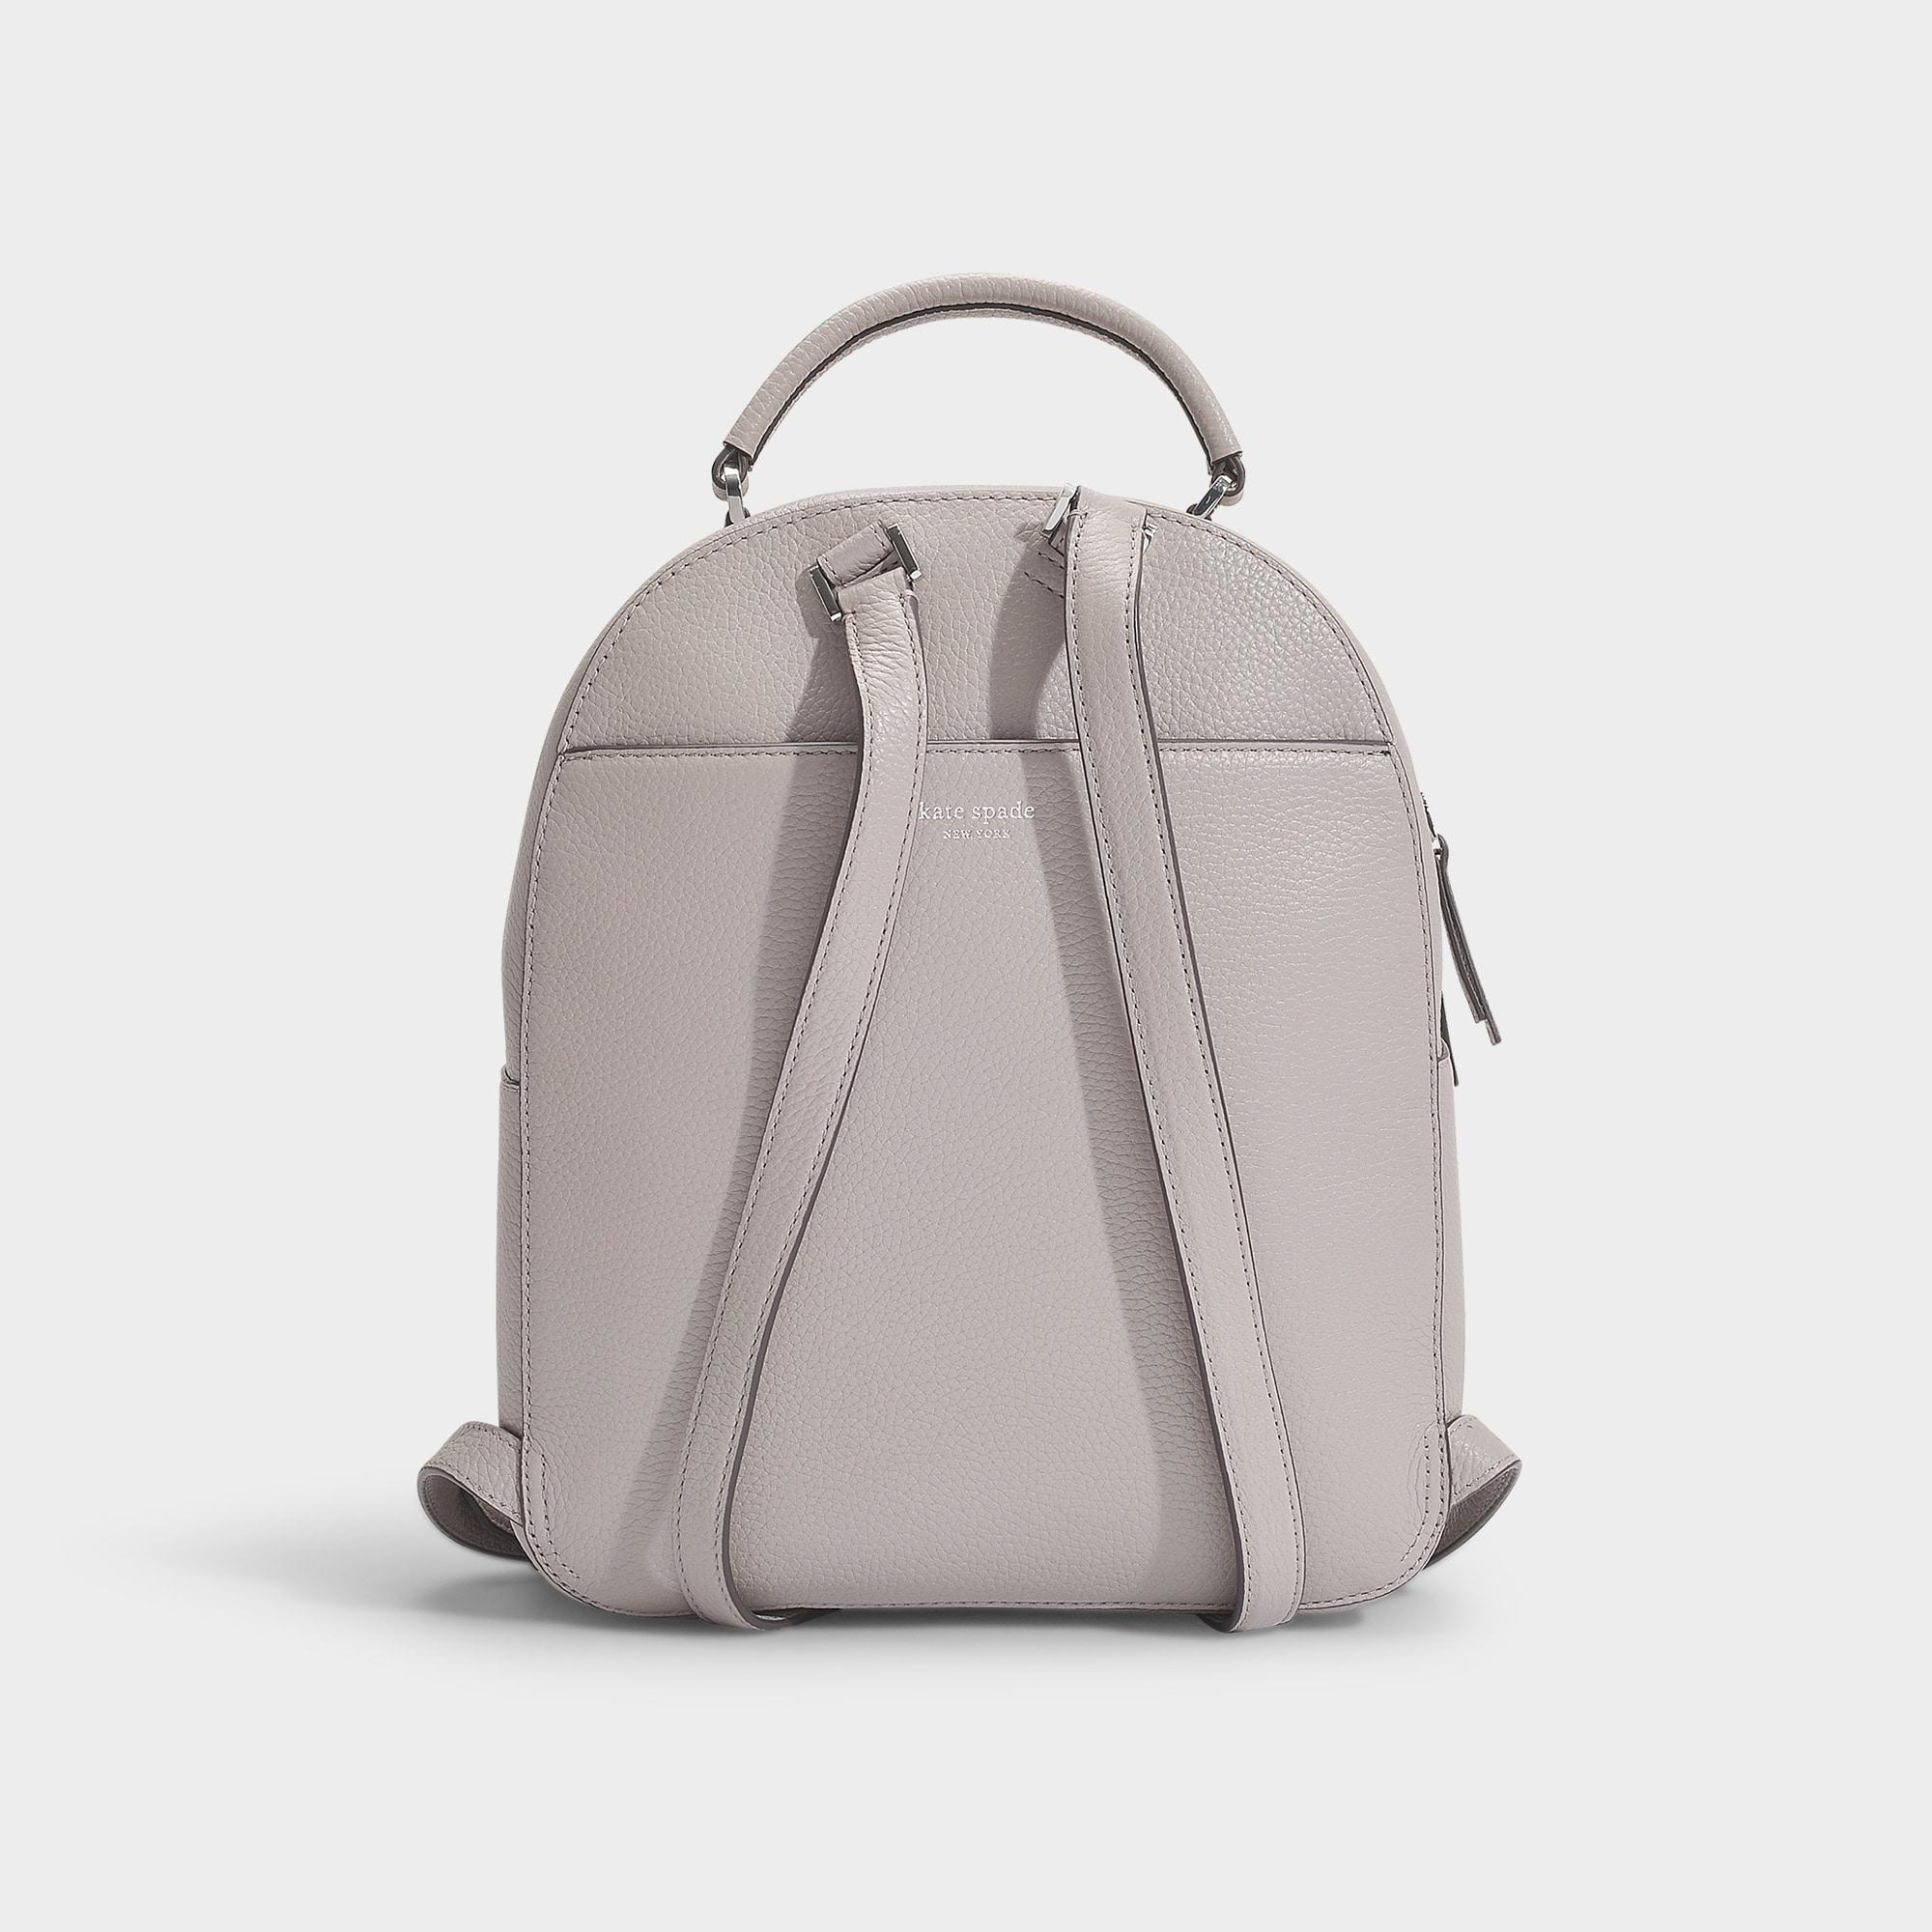 Taupe Sac Coloris À Neutre Polly Lyst Kate Dos Medium En Cuir Spade VUpqMSz